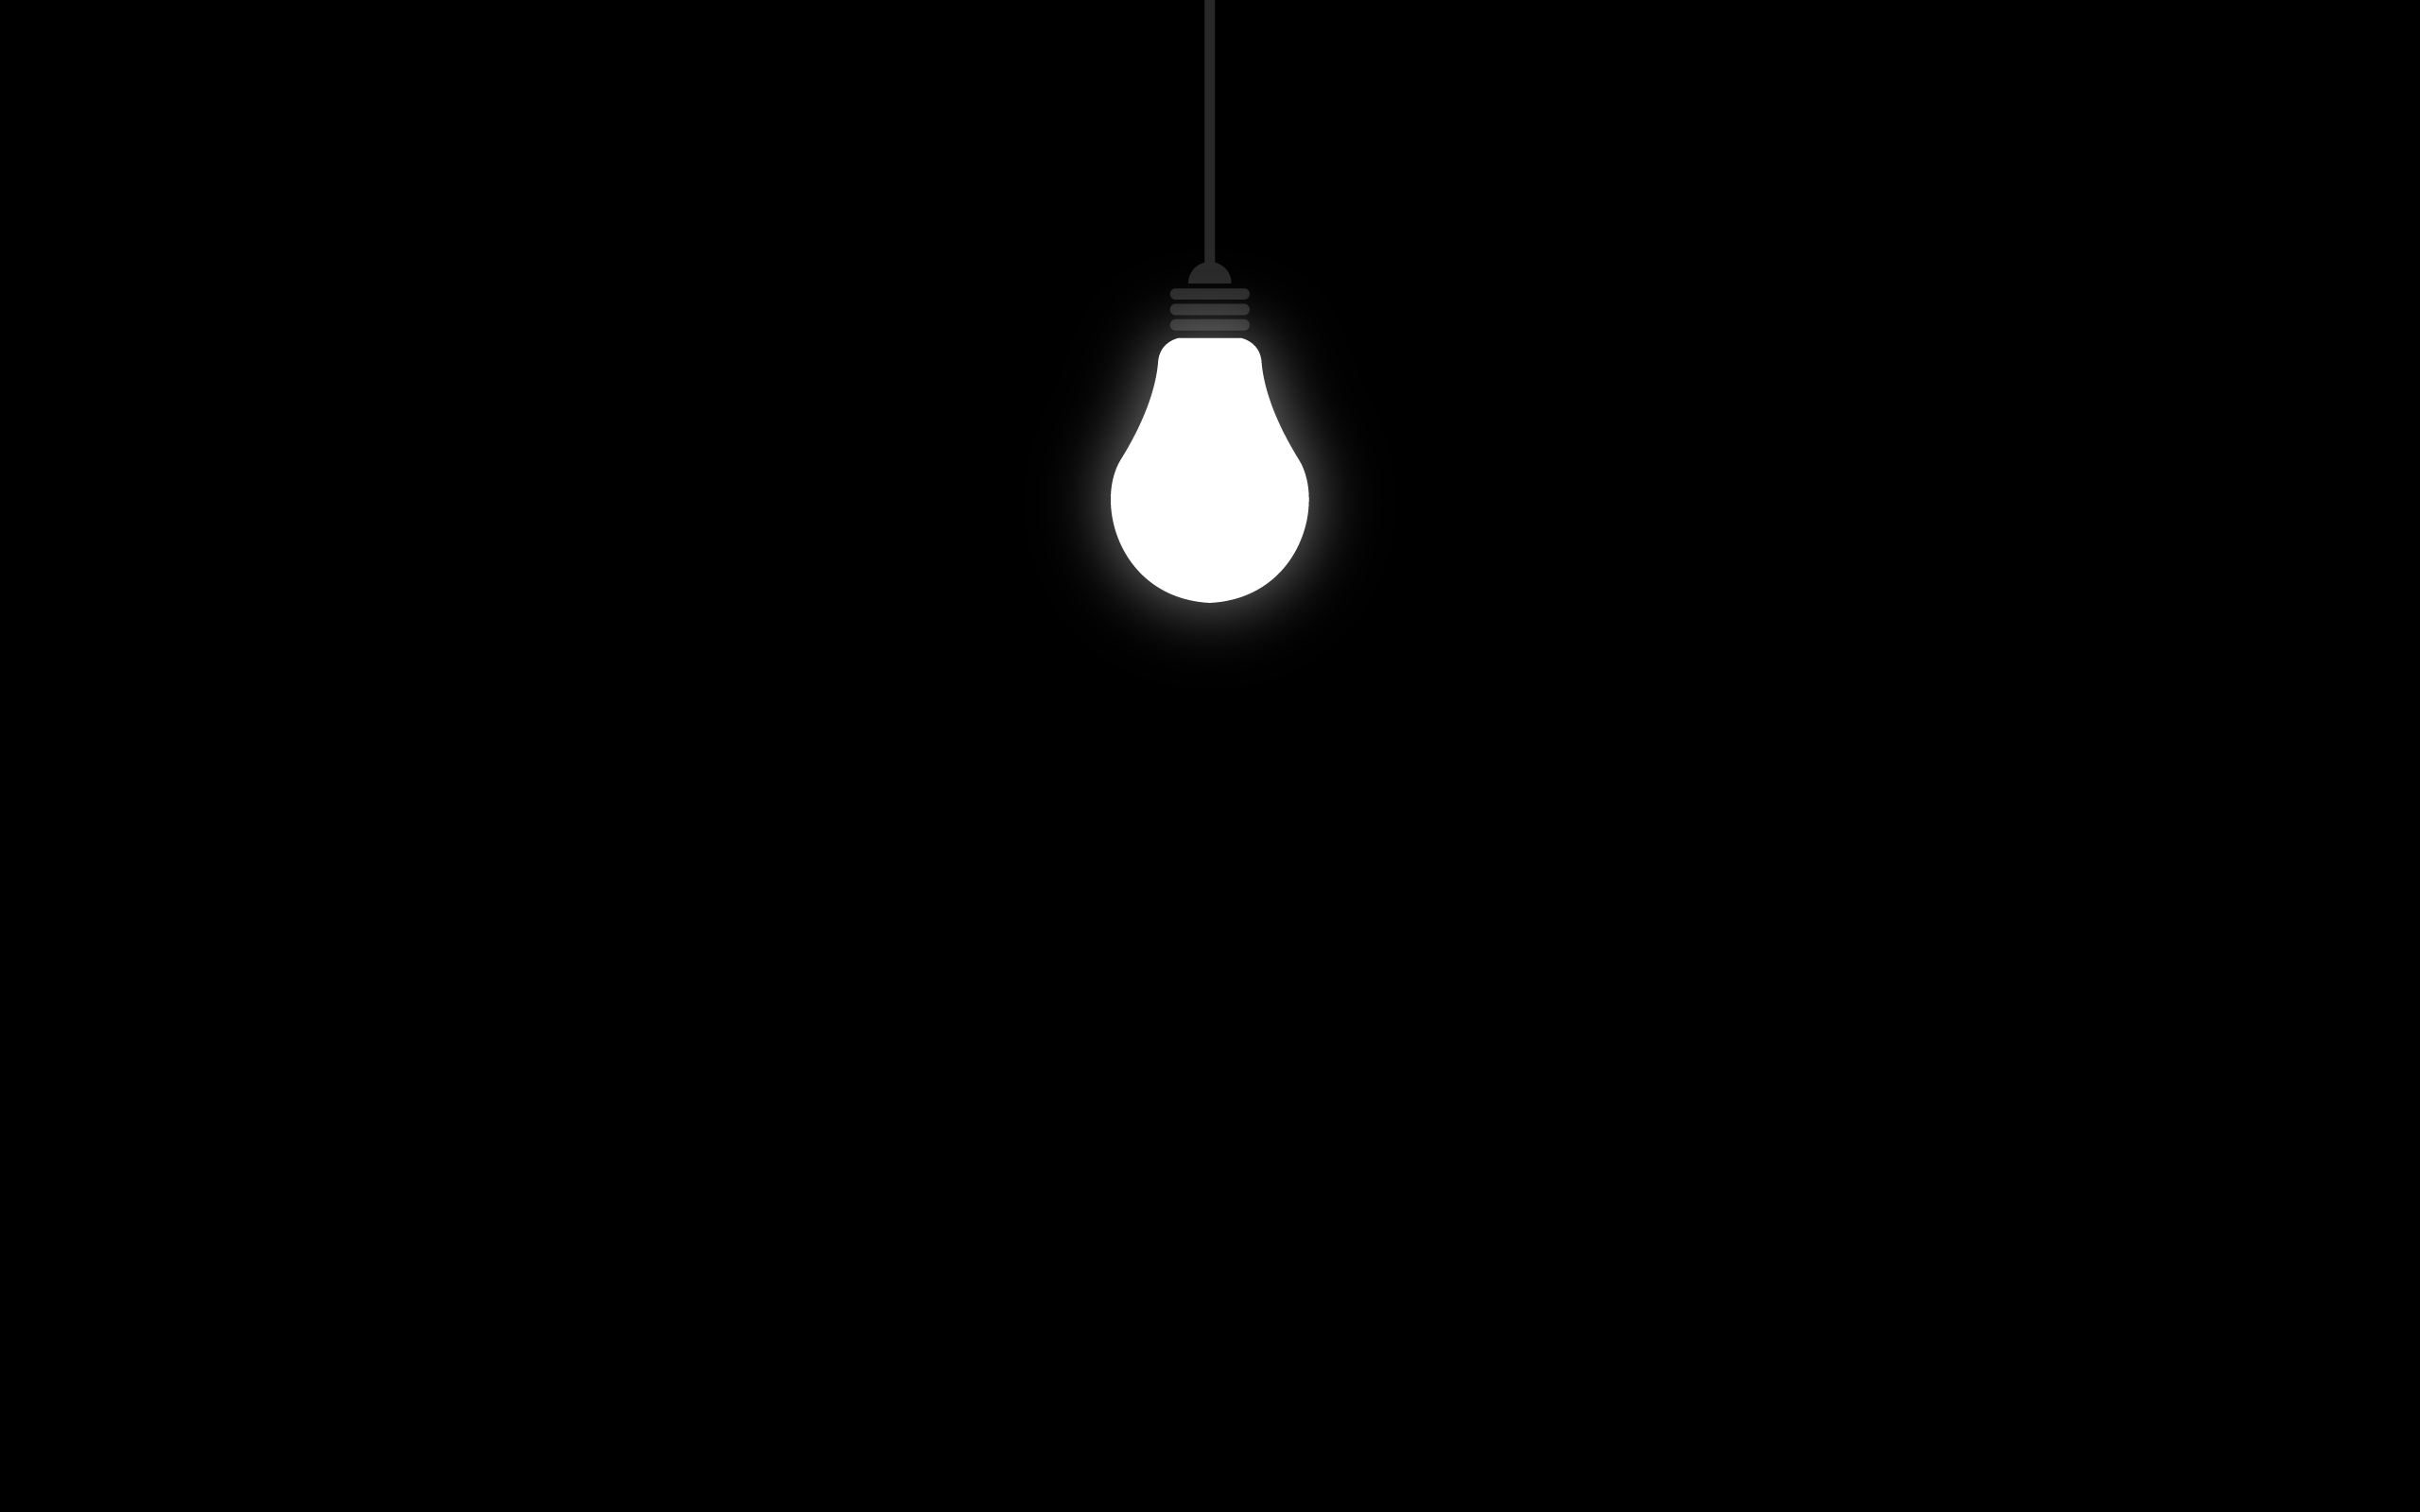 lonely light bulb a· wallpapers androidlightbulbblack background